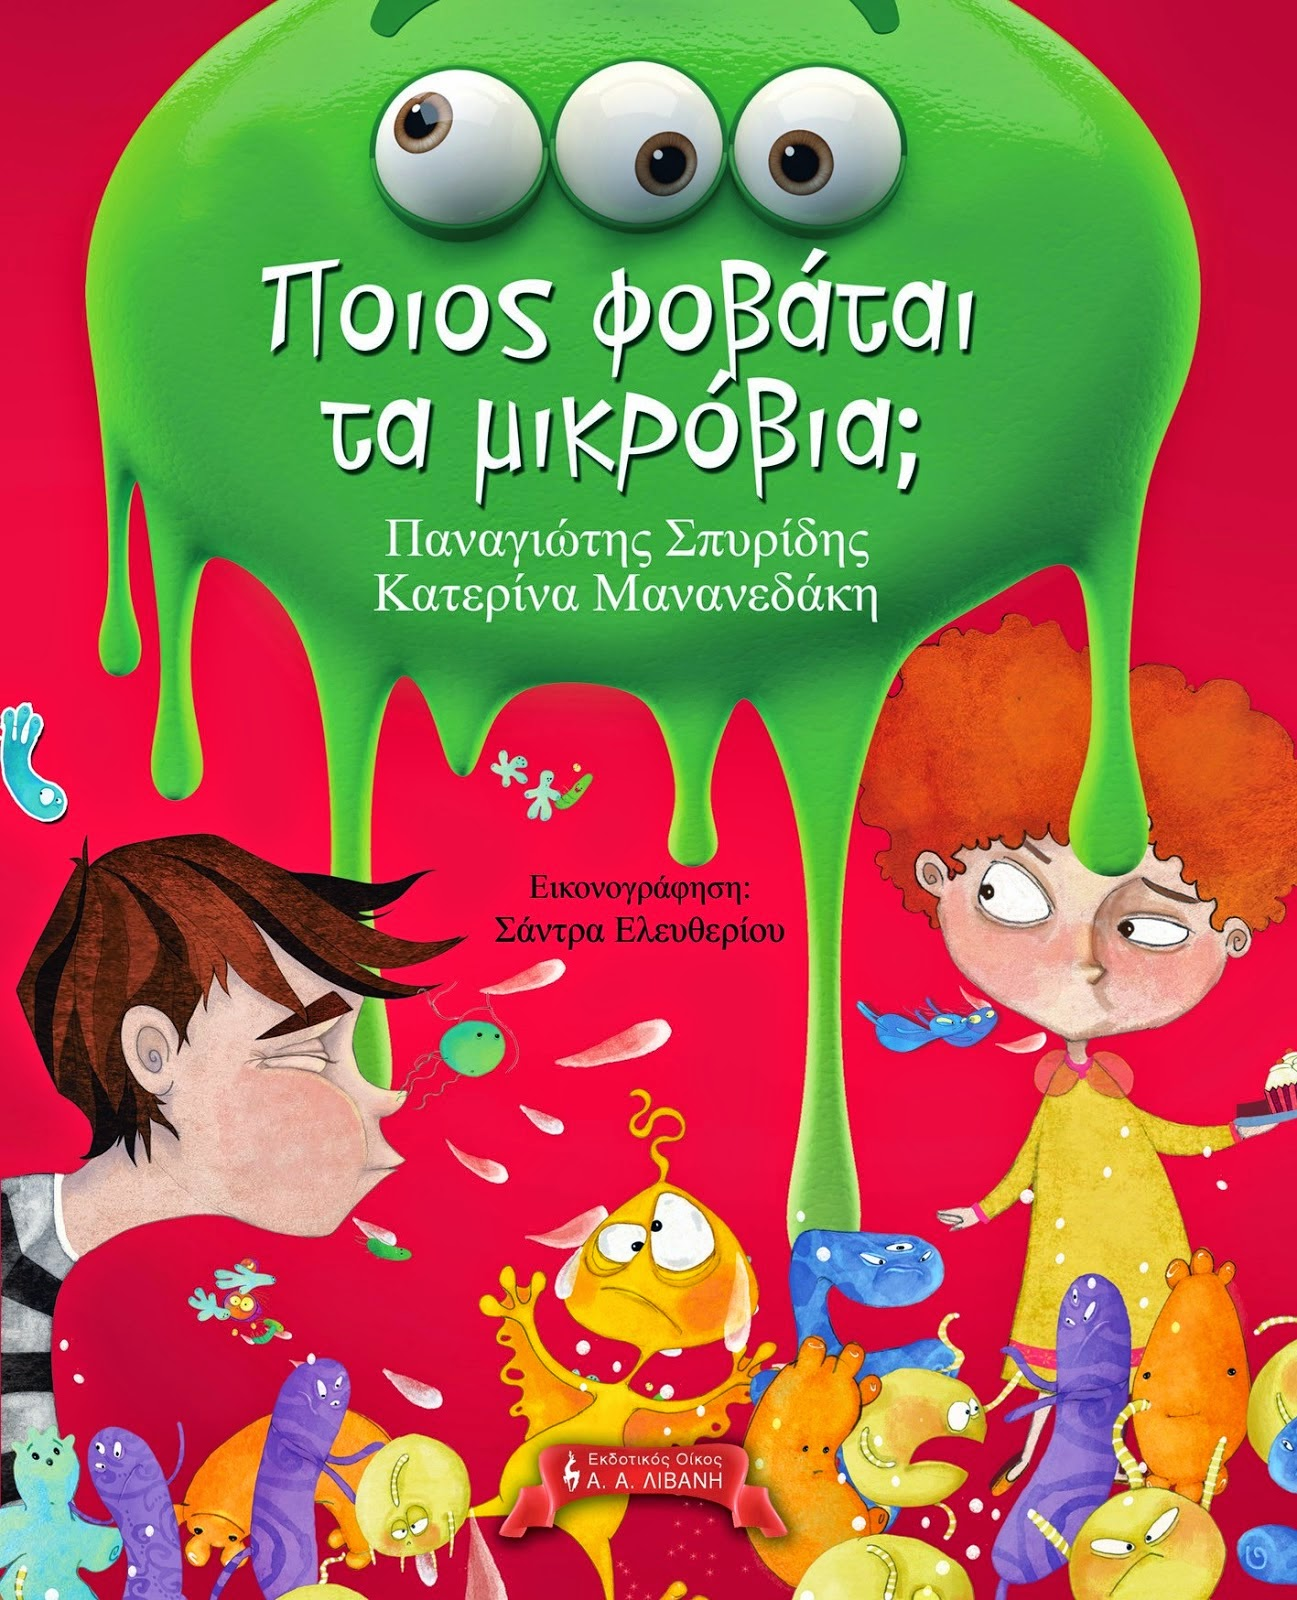 http://www.culture21century.gr/2014/12/book-review_31.html